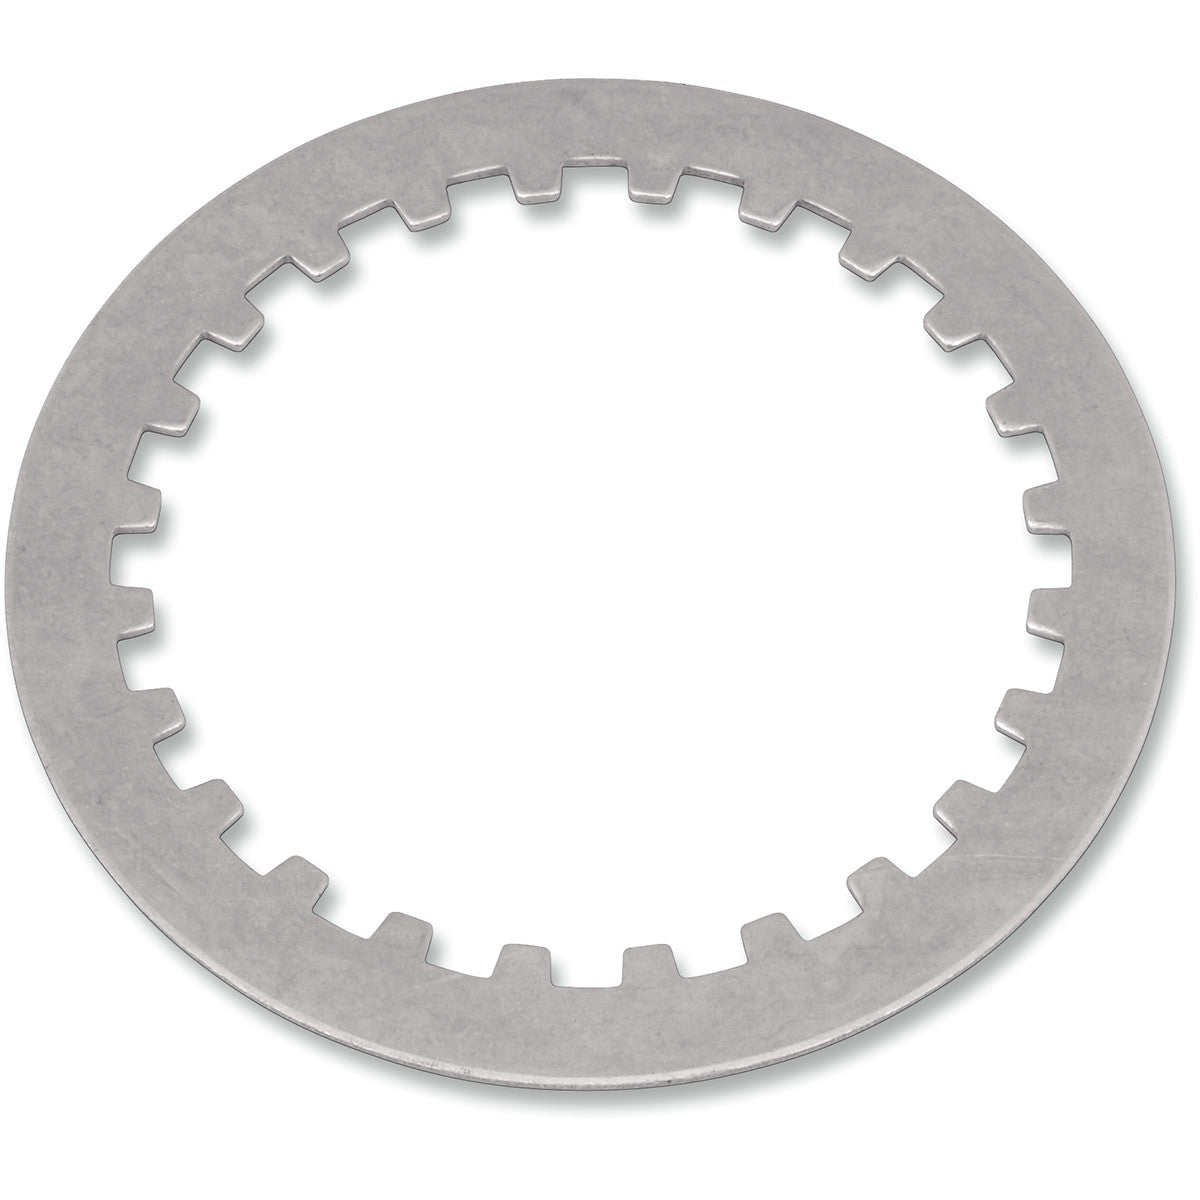 KGSP-501 KG POWERSPORTS Steel Driven Plate CLUTCH PLATE STEEL YAM